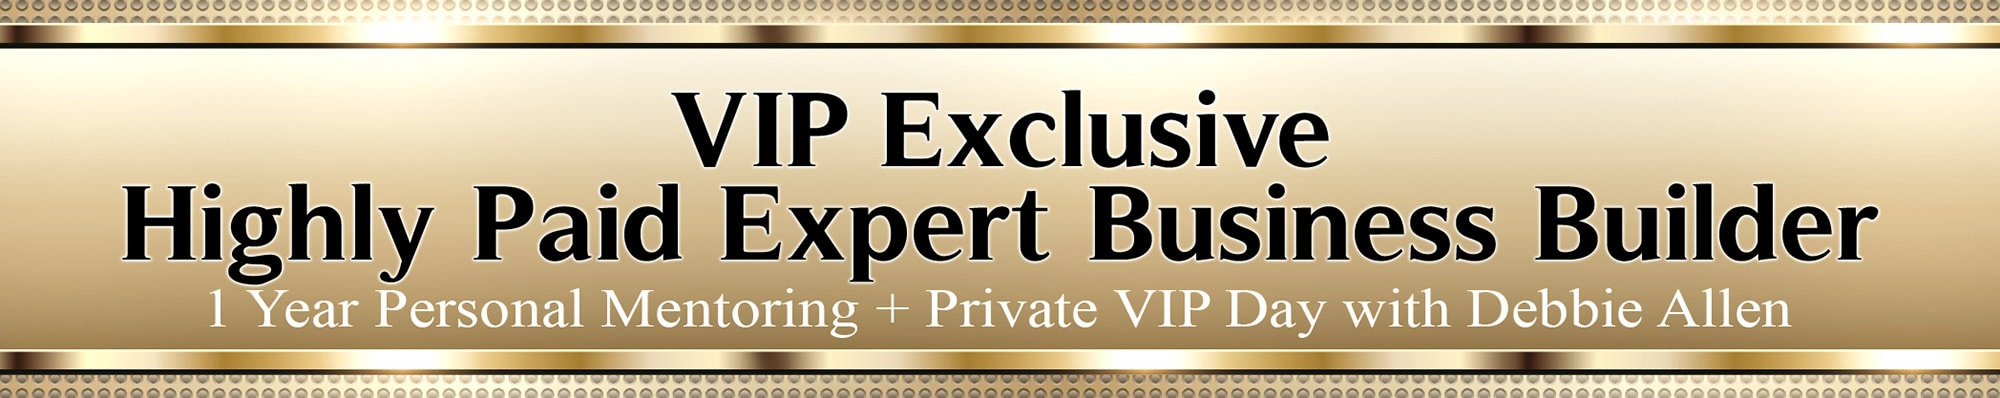 VIP Exclusive Highly Paid Expert Business Builder banner